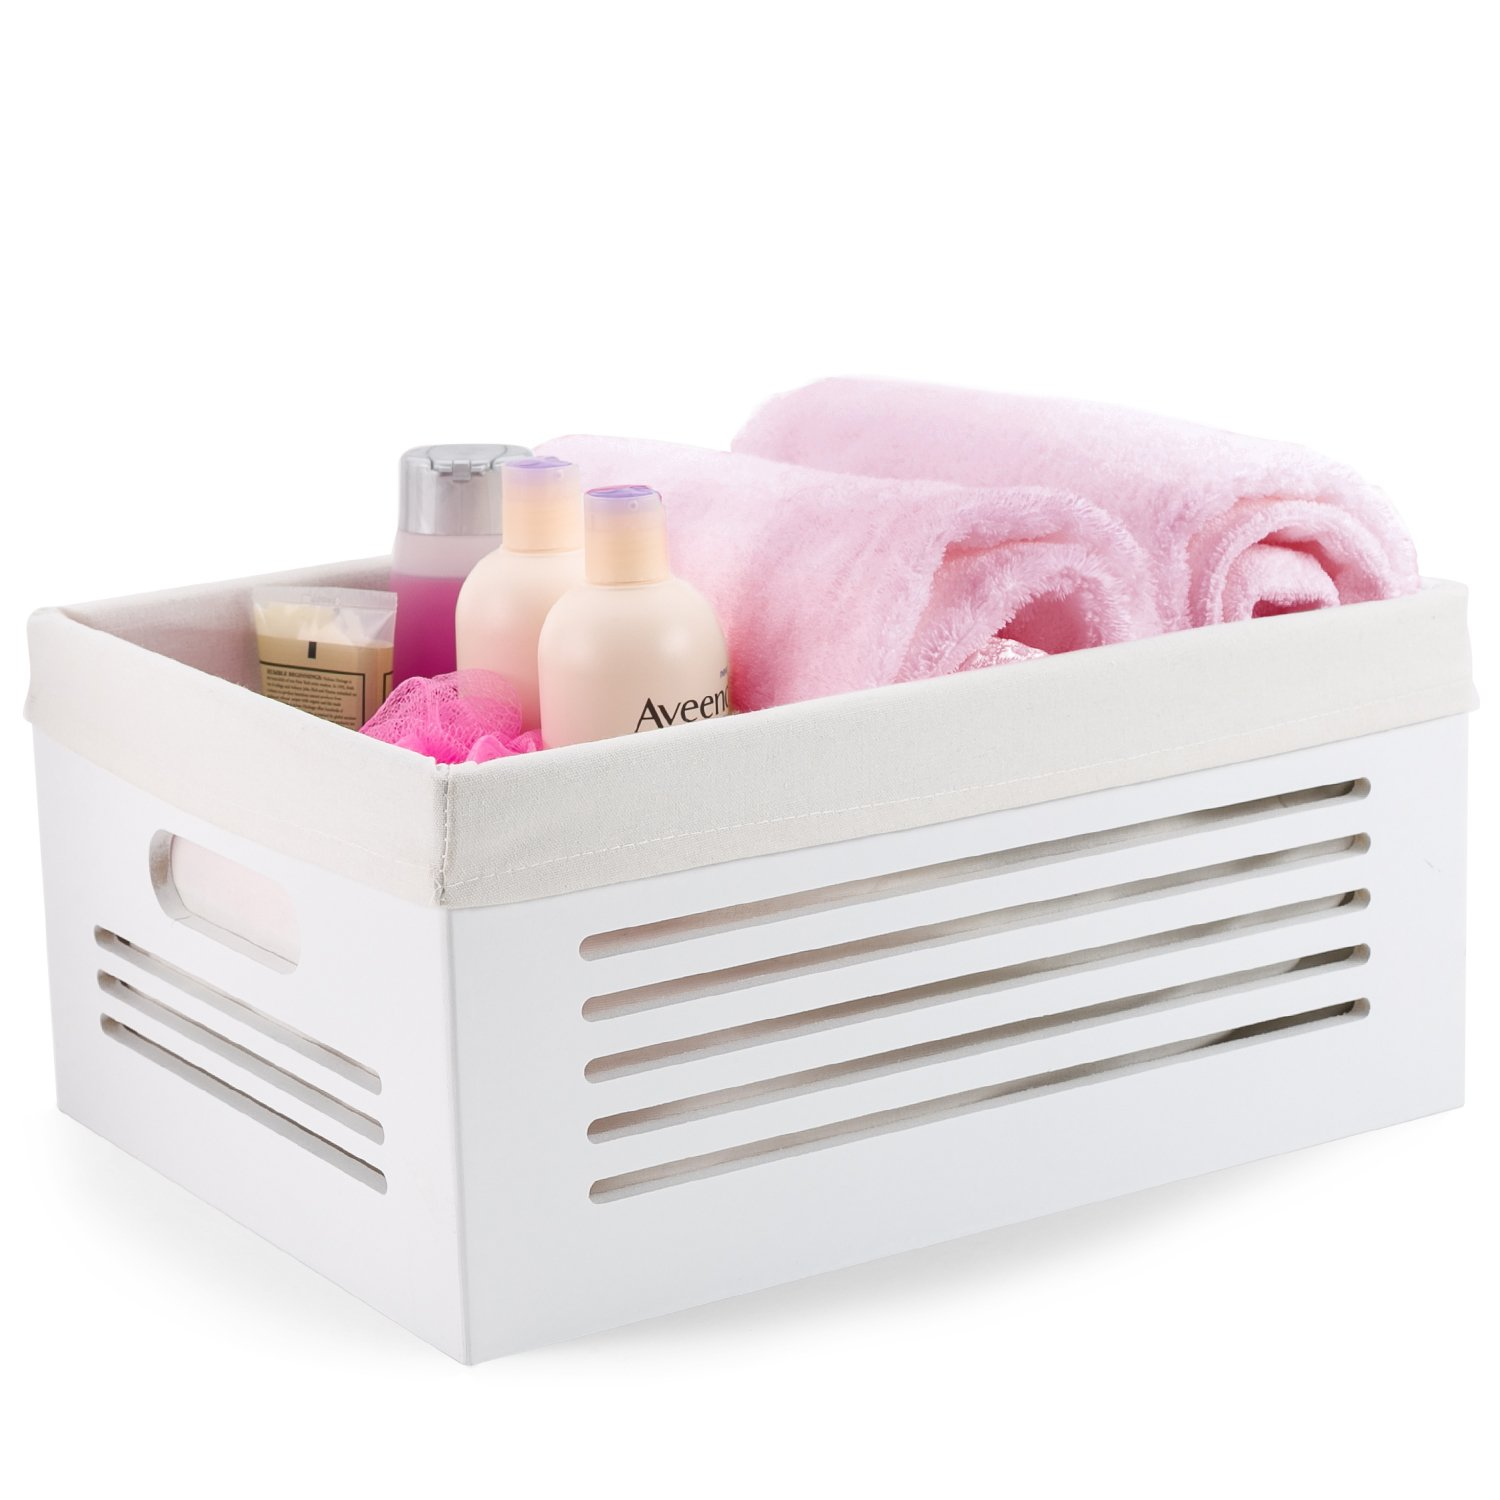 Wooden Storage Bin Container - Decorative Closet, Cabinet and Shelf Basket Organizer Lined with Machine Washable Soft Linen Fabric - White, Large